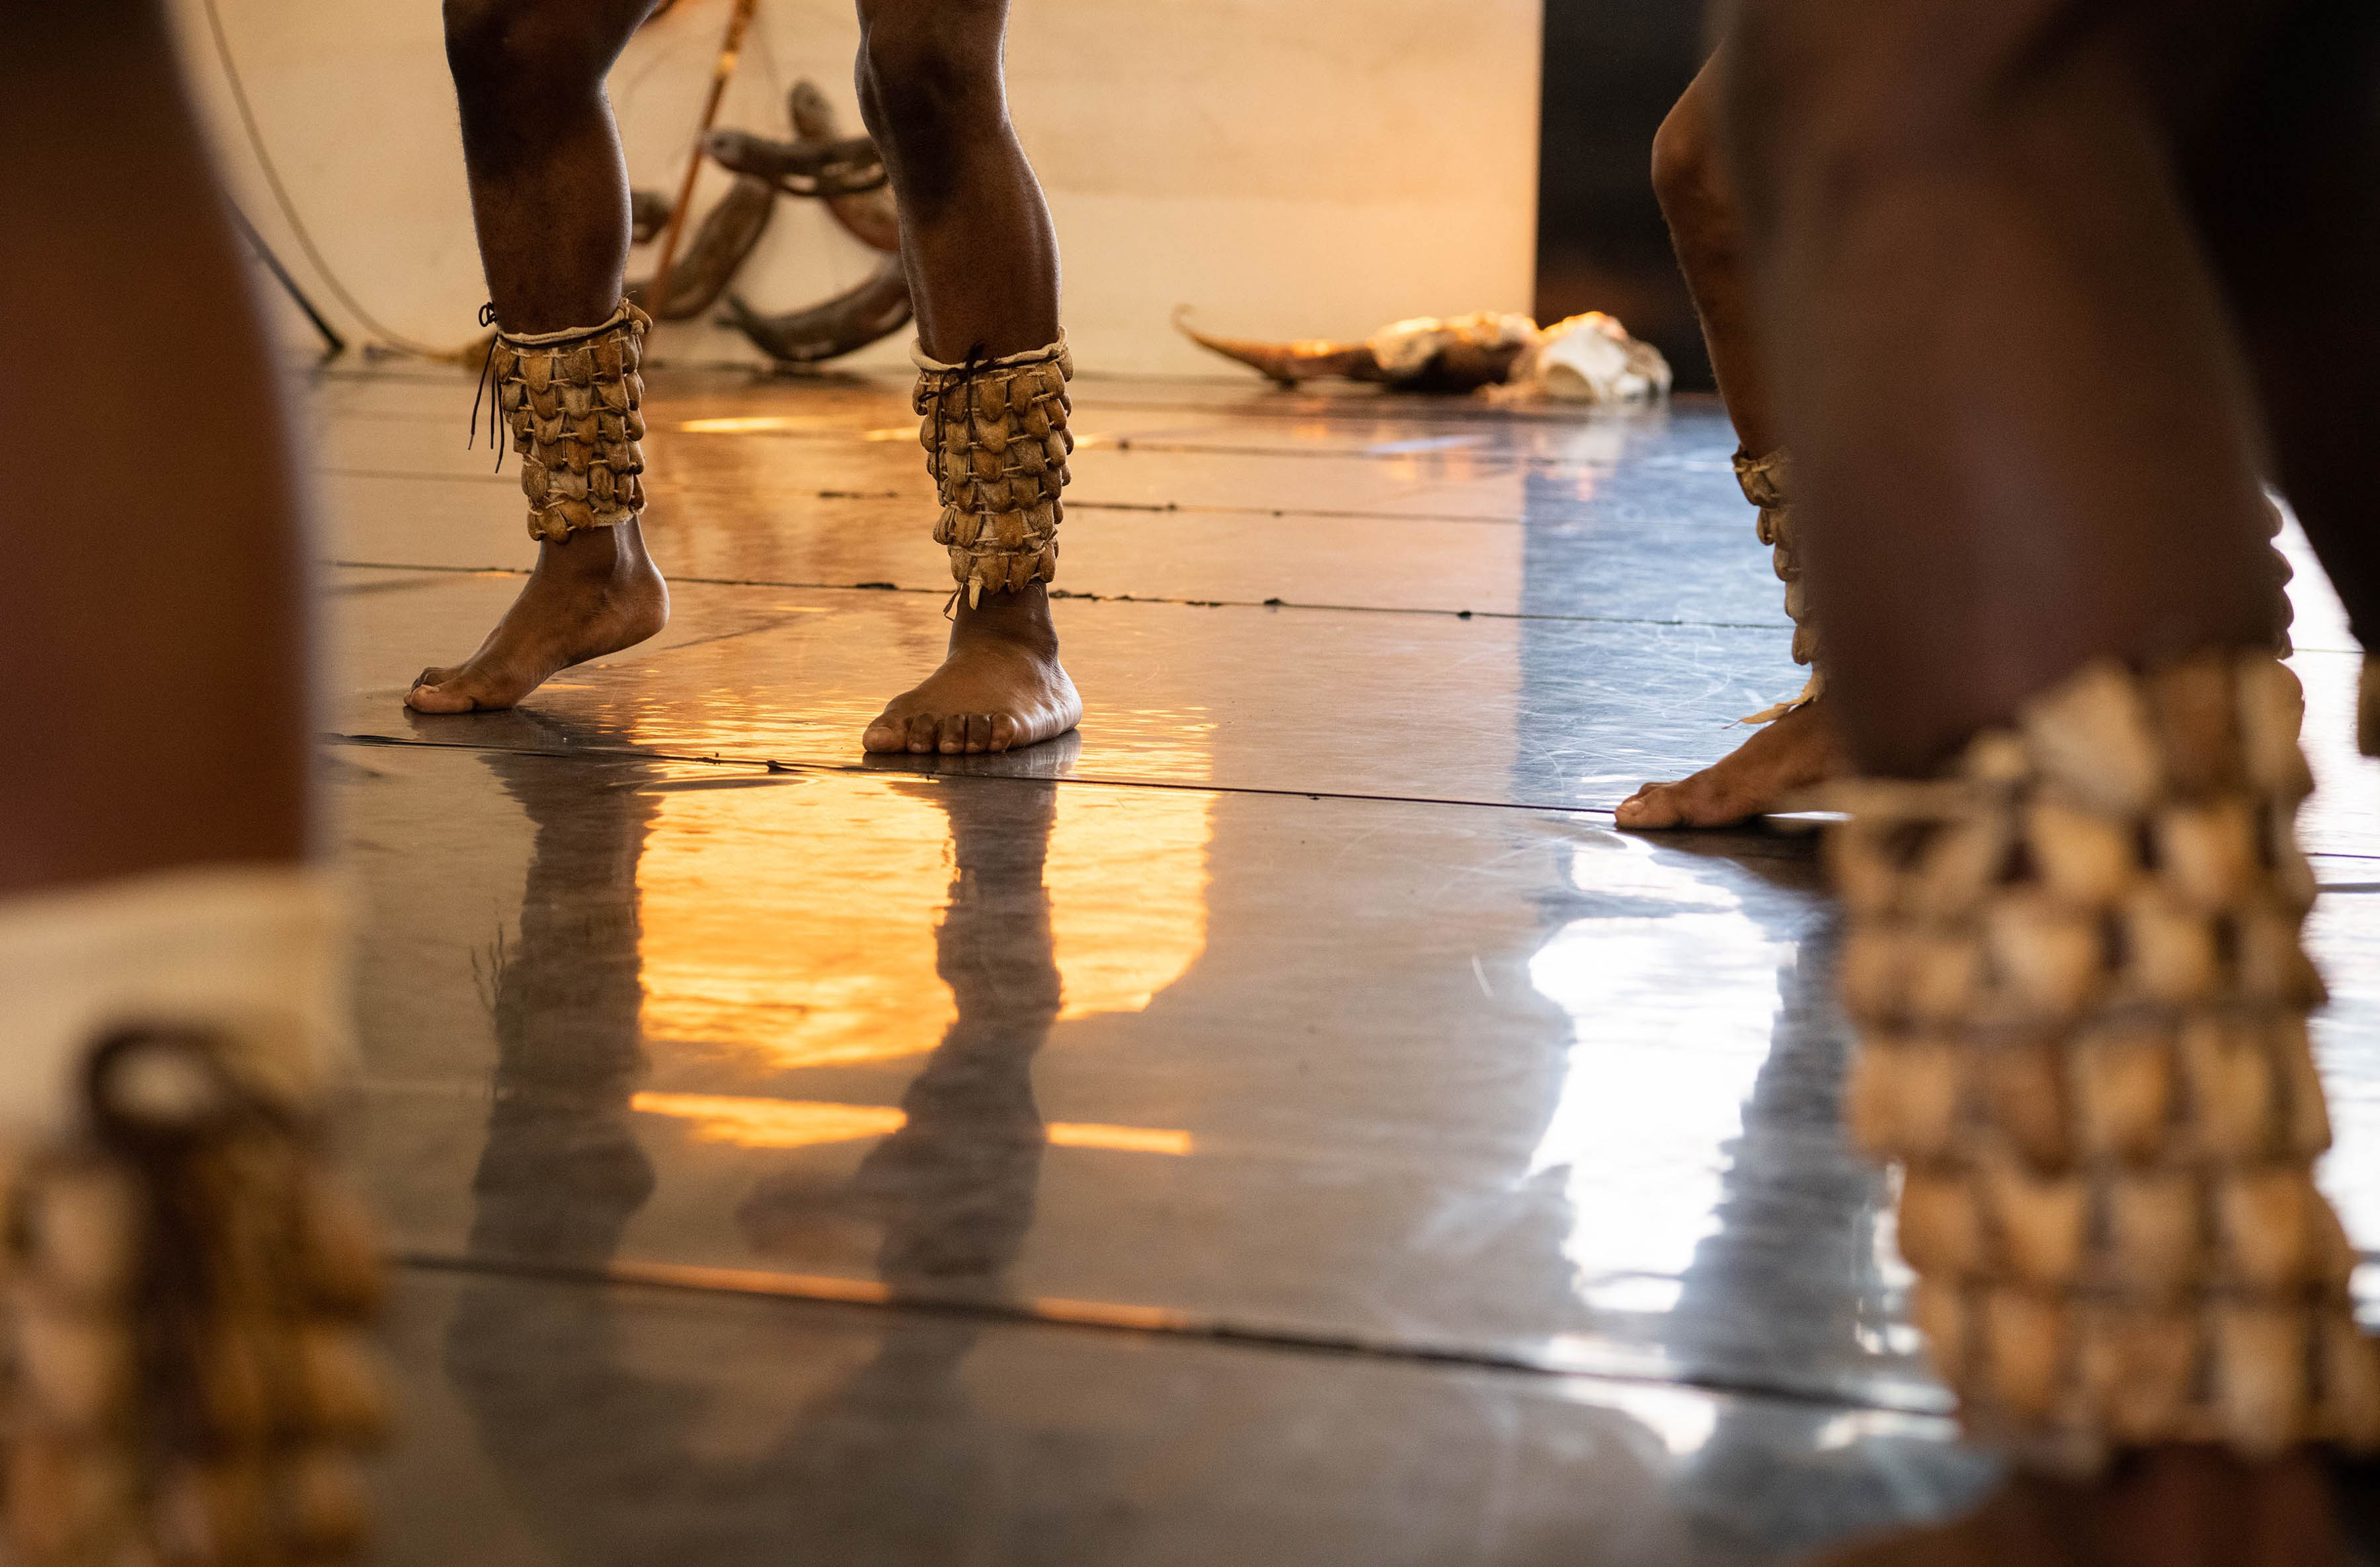 18 September 2019: The Tranceformation dancers wear rattles on their legs, which adds to the percussive sounds in the work.